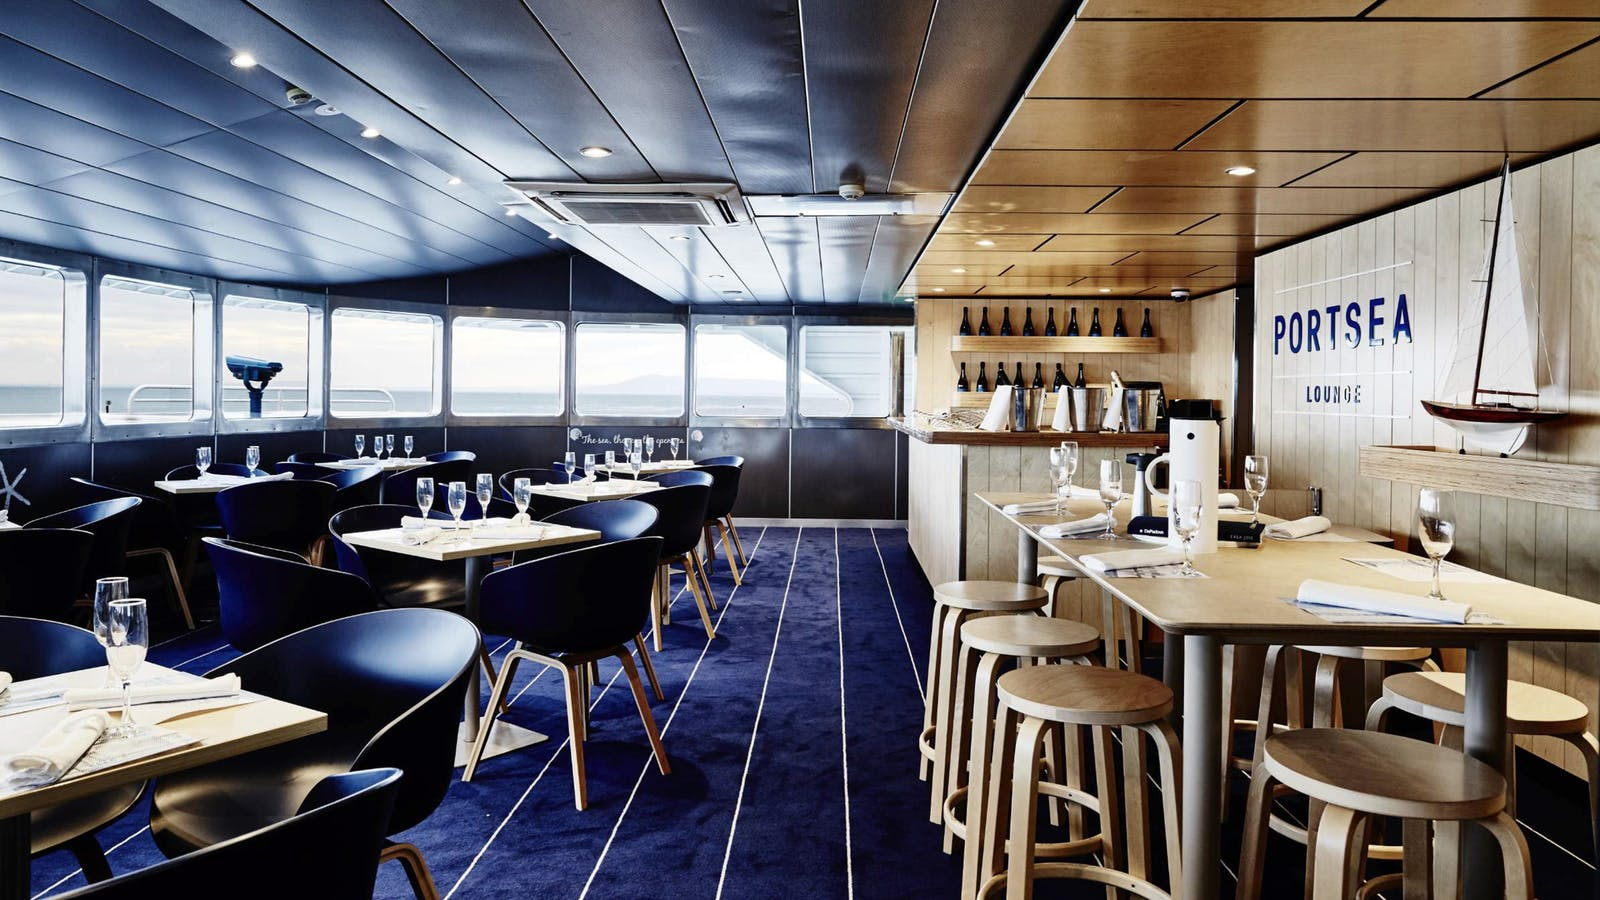 Portsea Lounge aboard Searoad Ferries